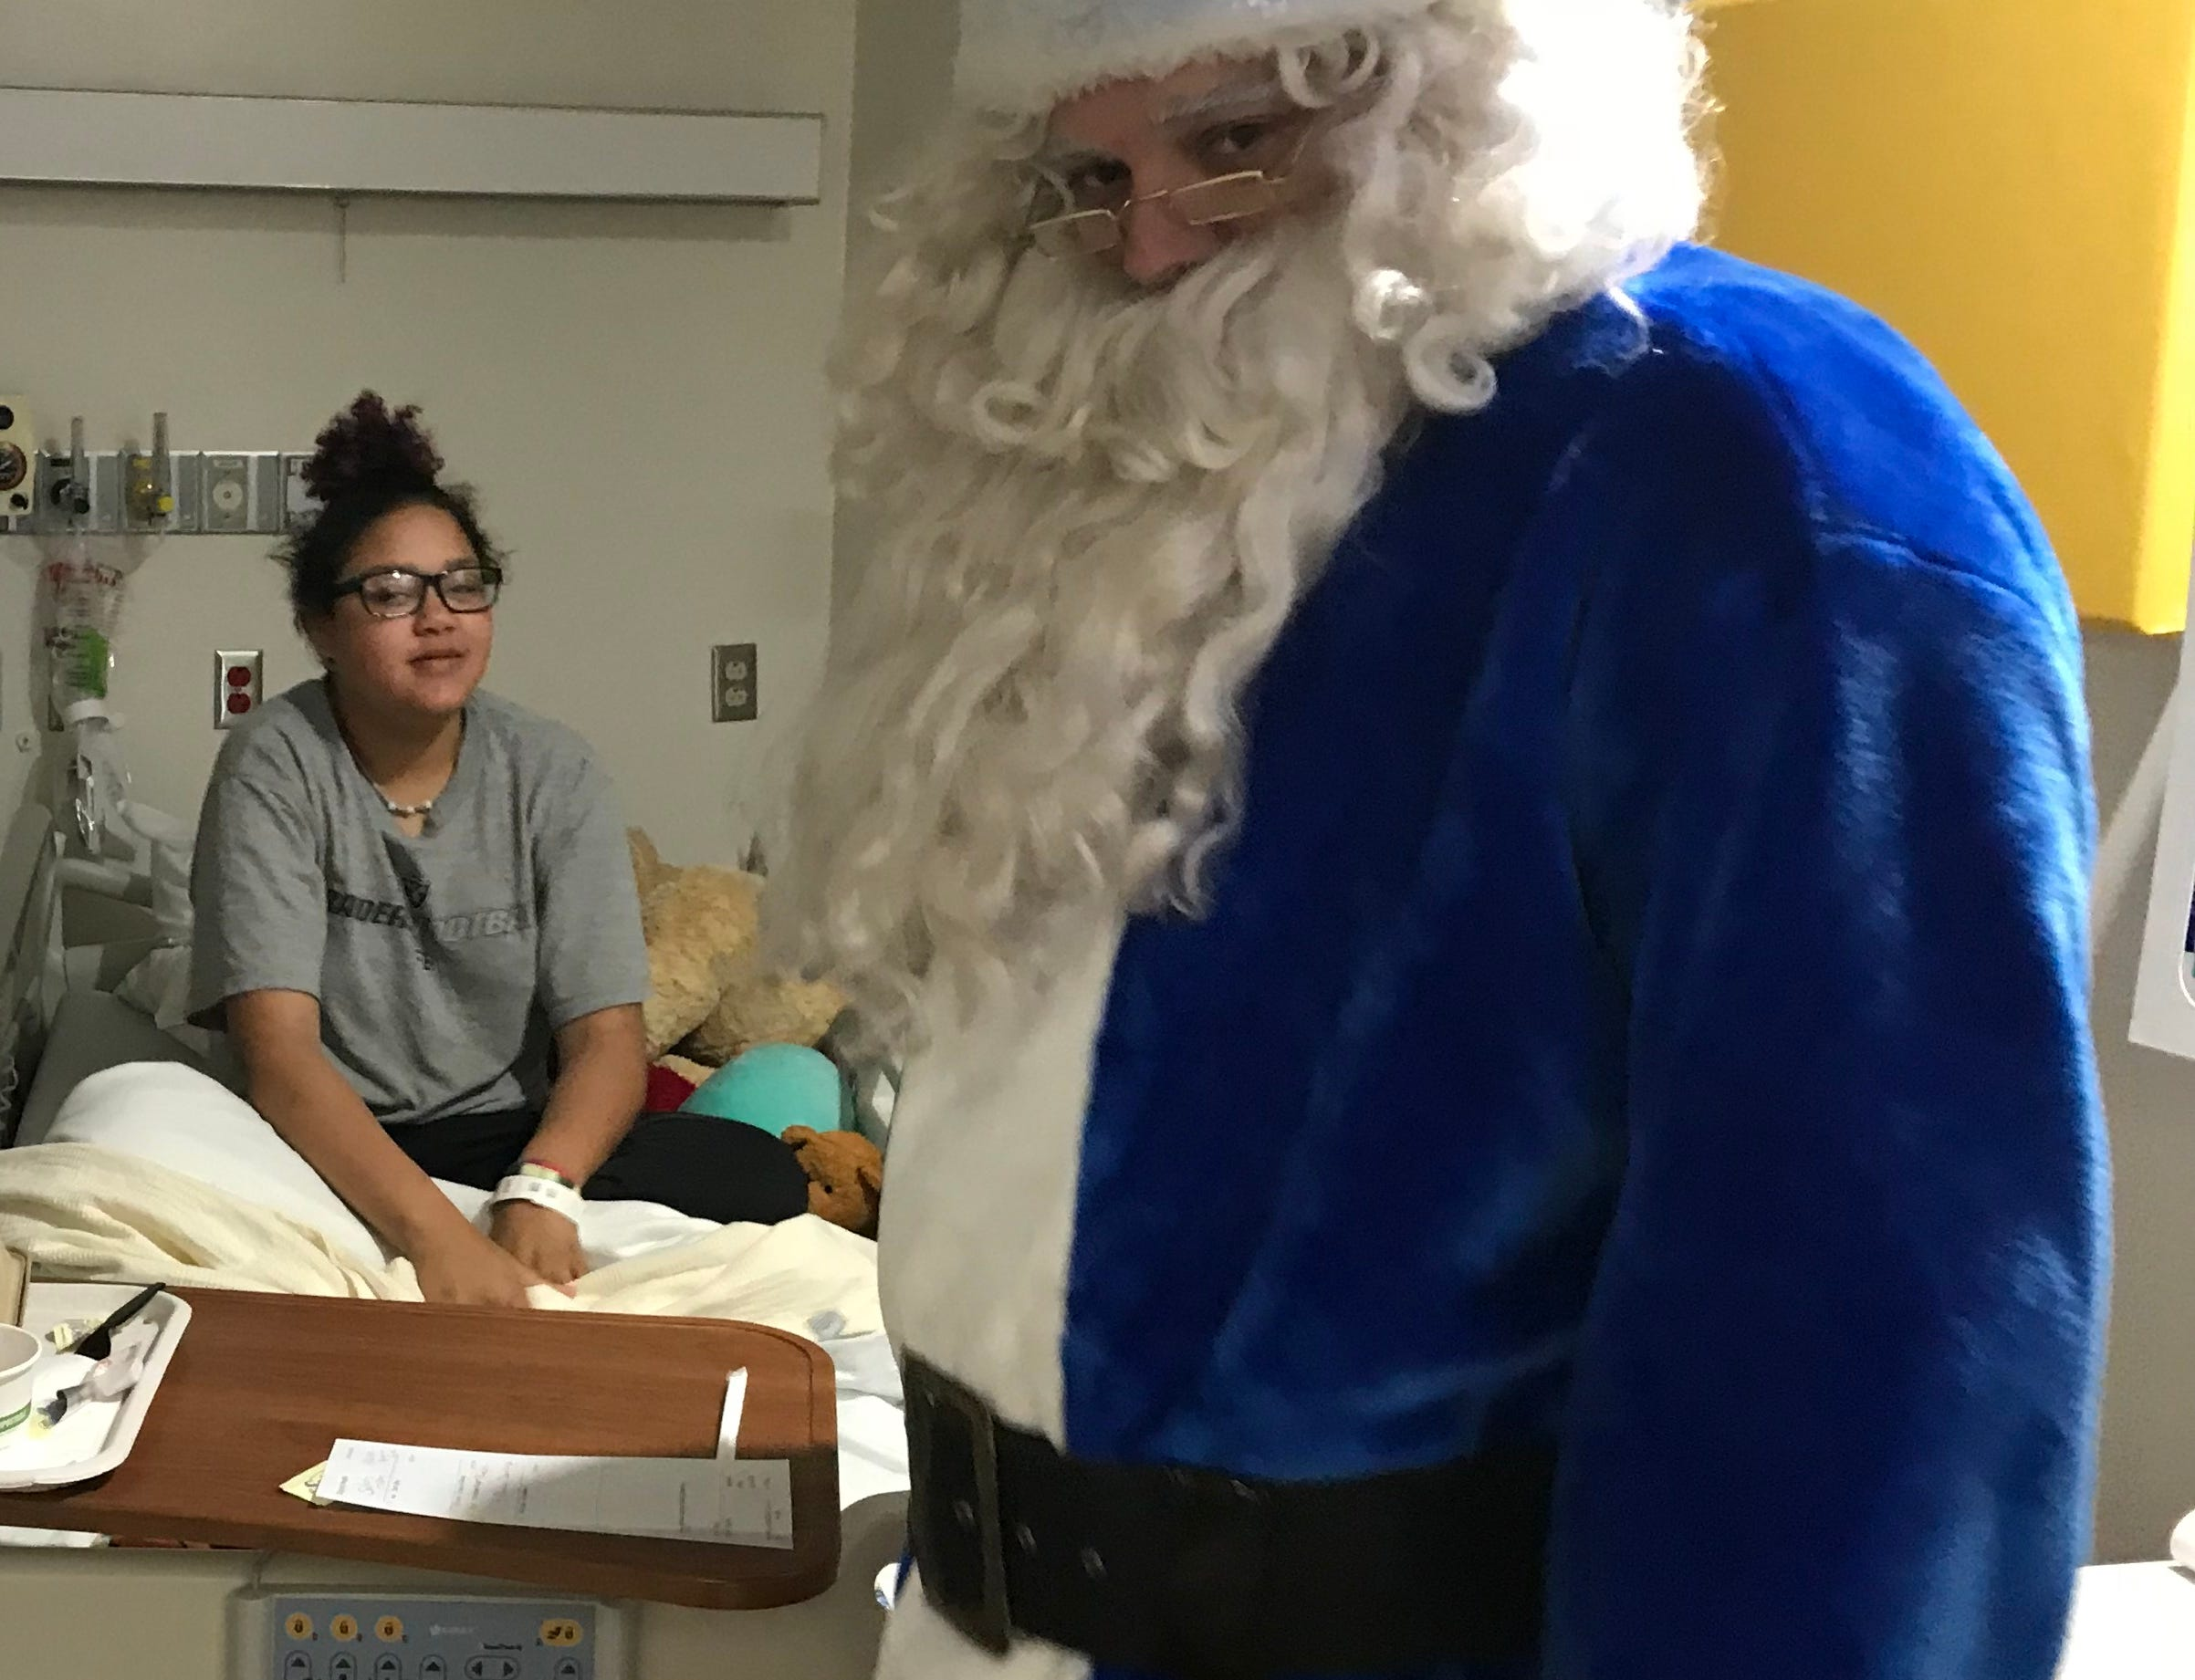 Among those Blue Santa visited during his rounds Friday was 15-year-old Isis Belbal-Andrews, a patient in the pediatrics ward at Mercy Medical Center in Redding.